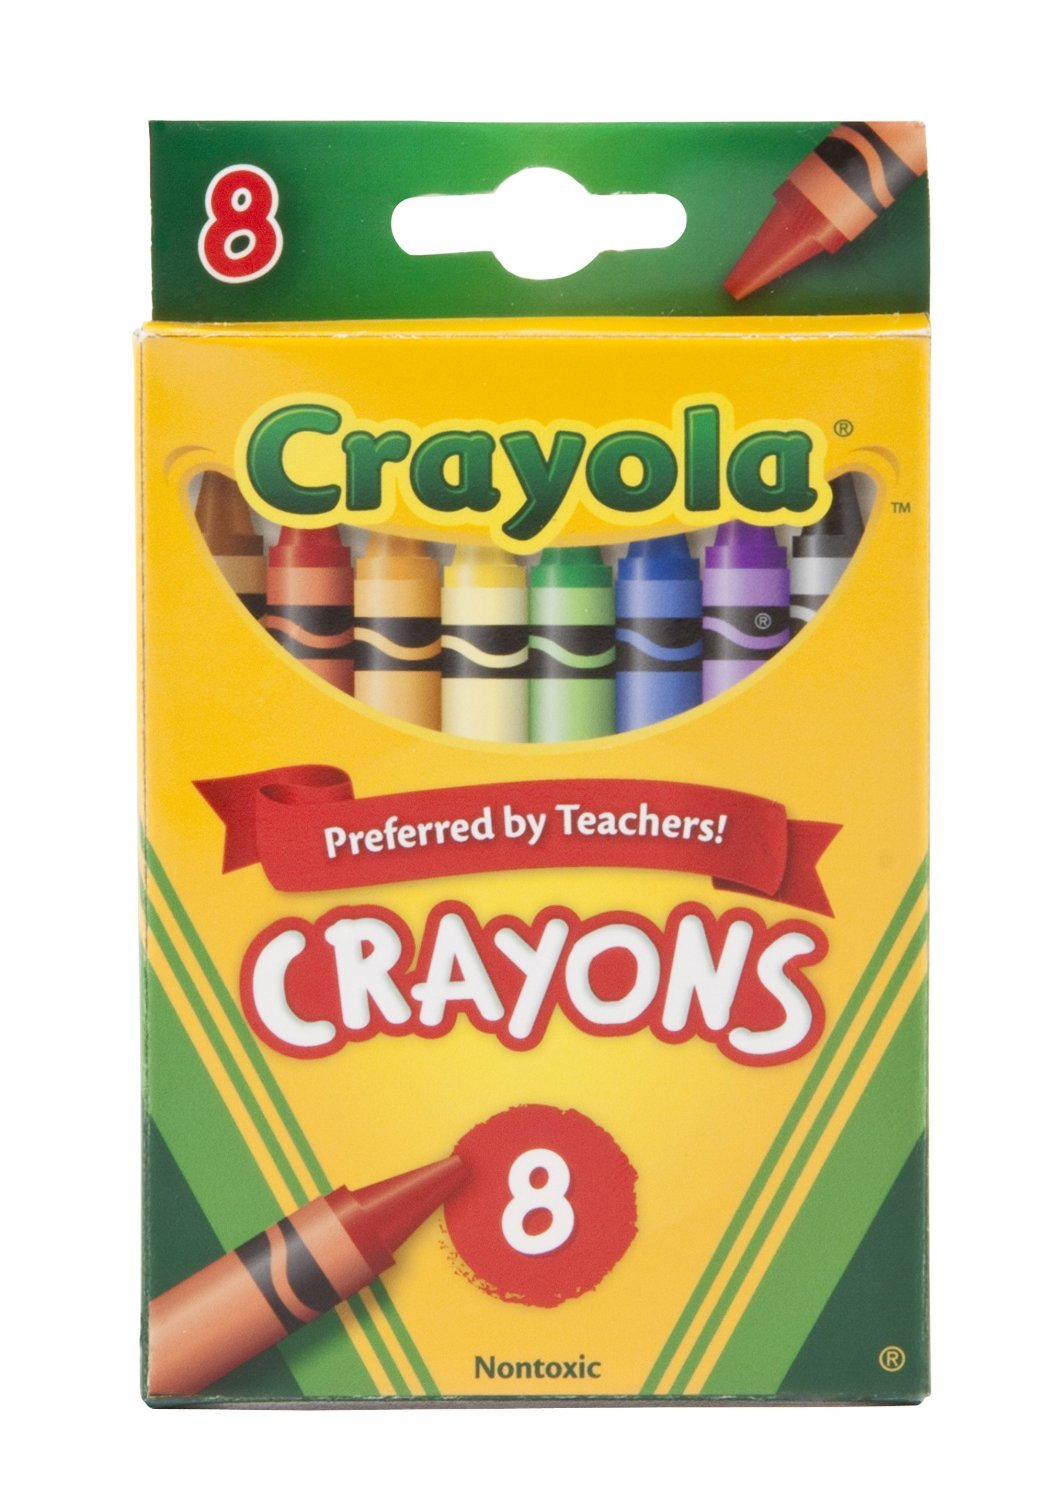 Crayola Crayons, 8 Count (Pack of 48)